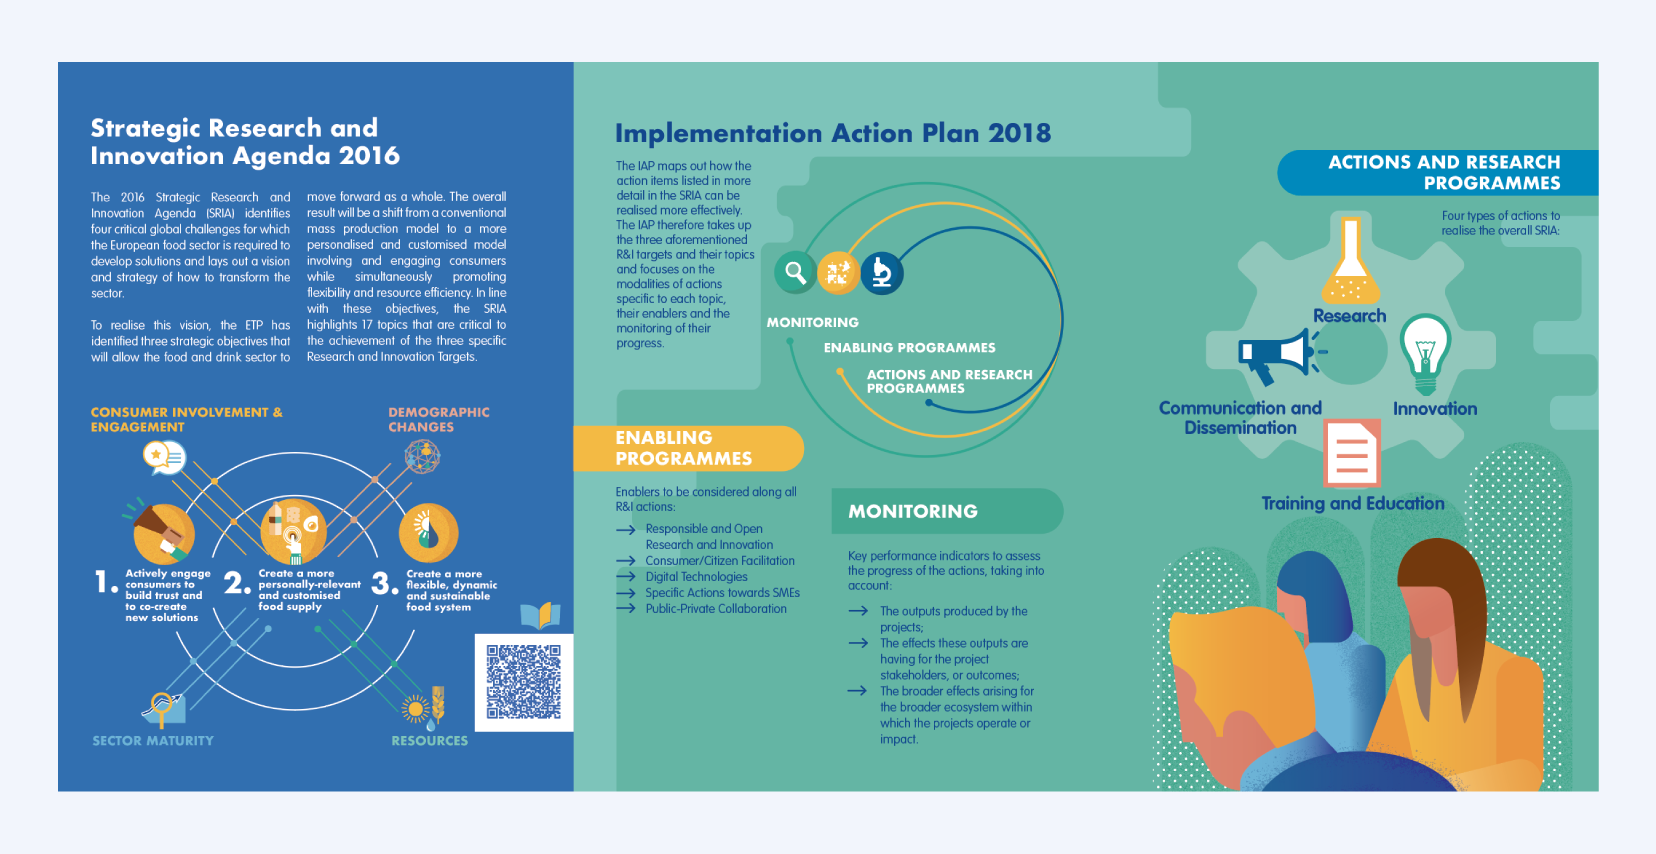 ETP_Implementation_Action_Plan_2018_Brochure_Agenda